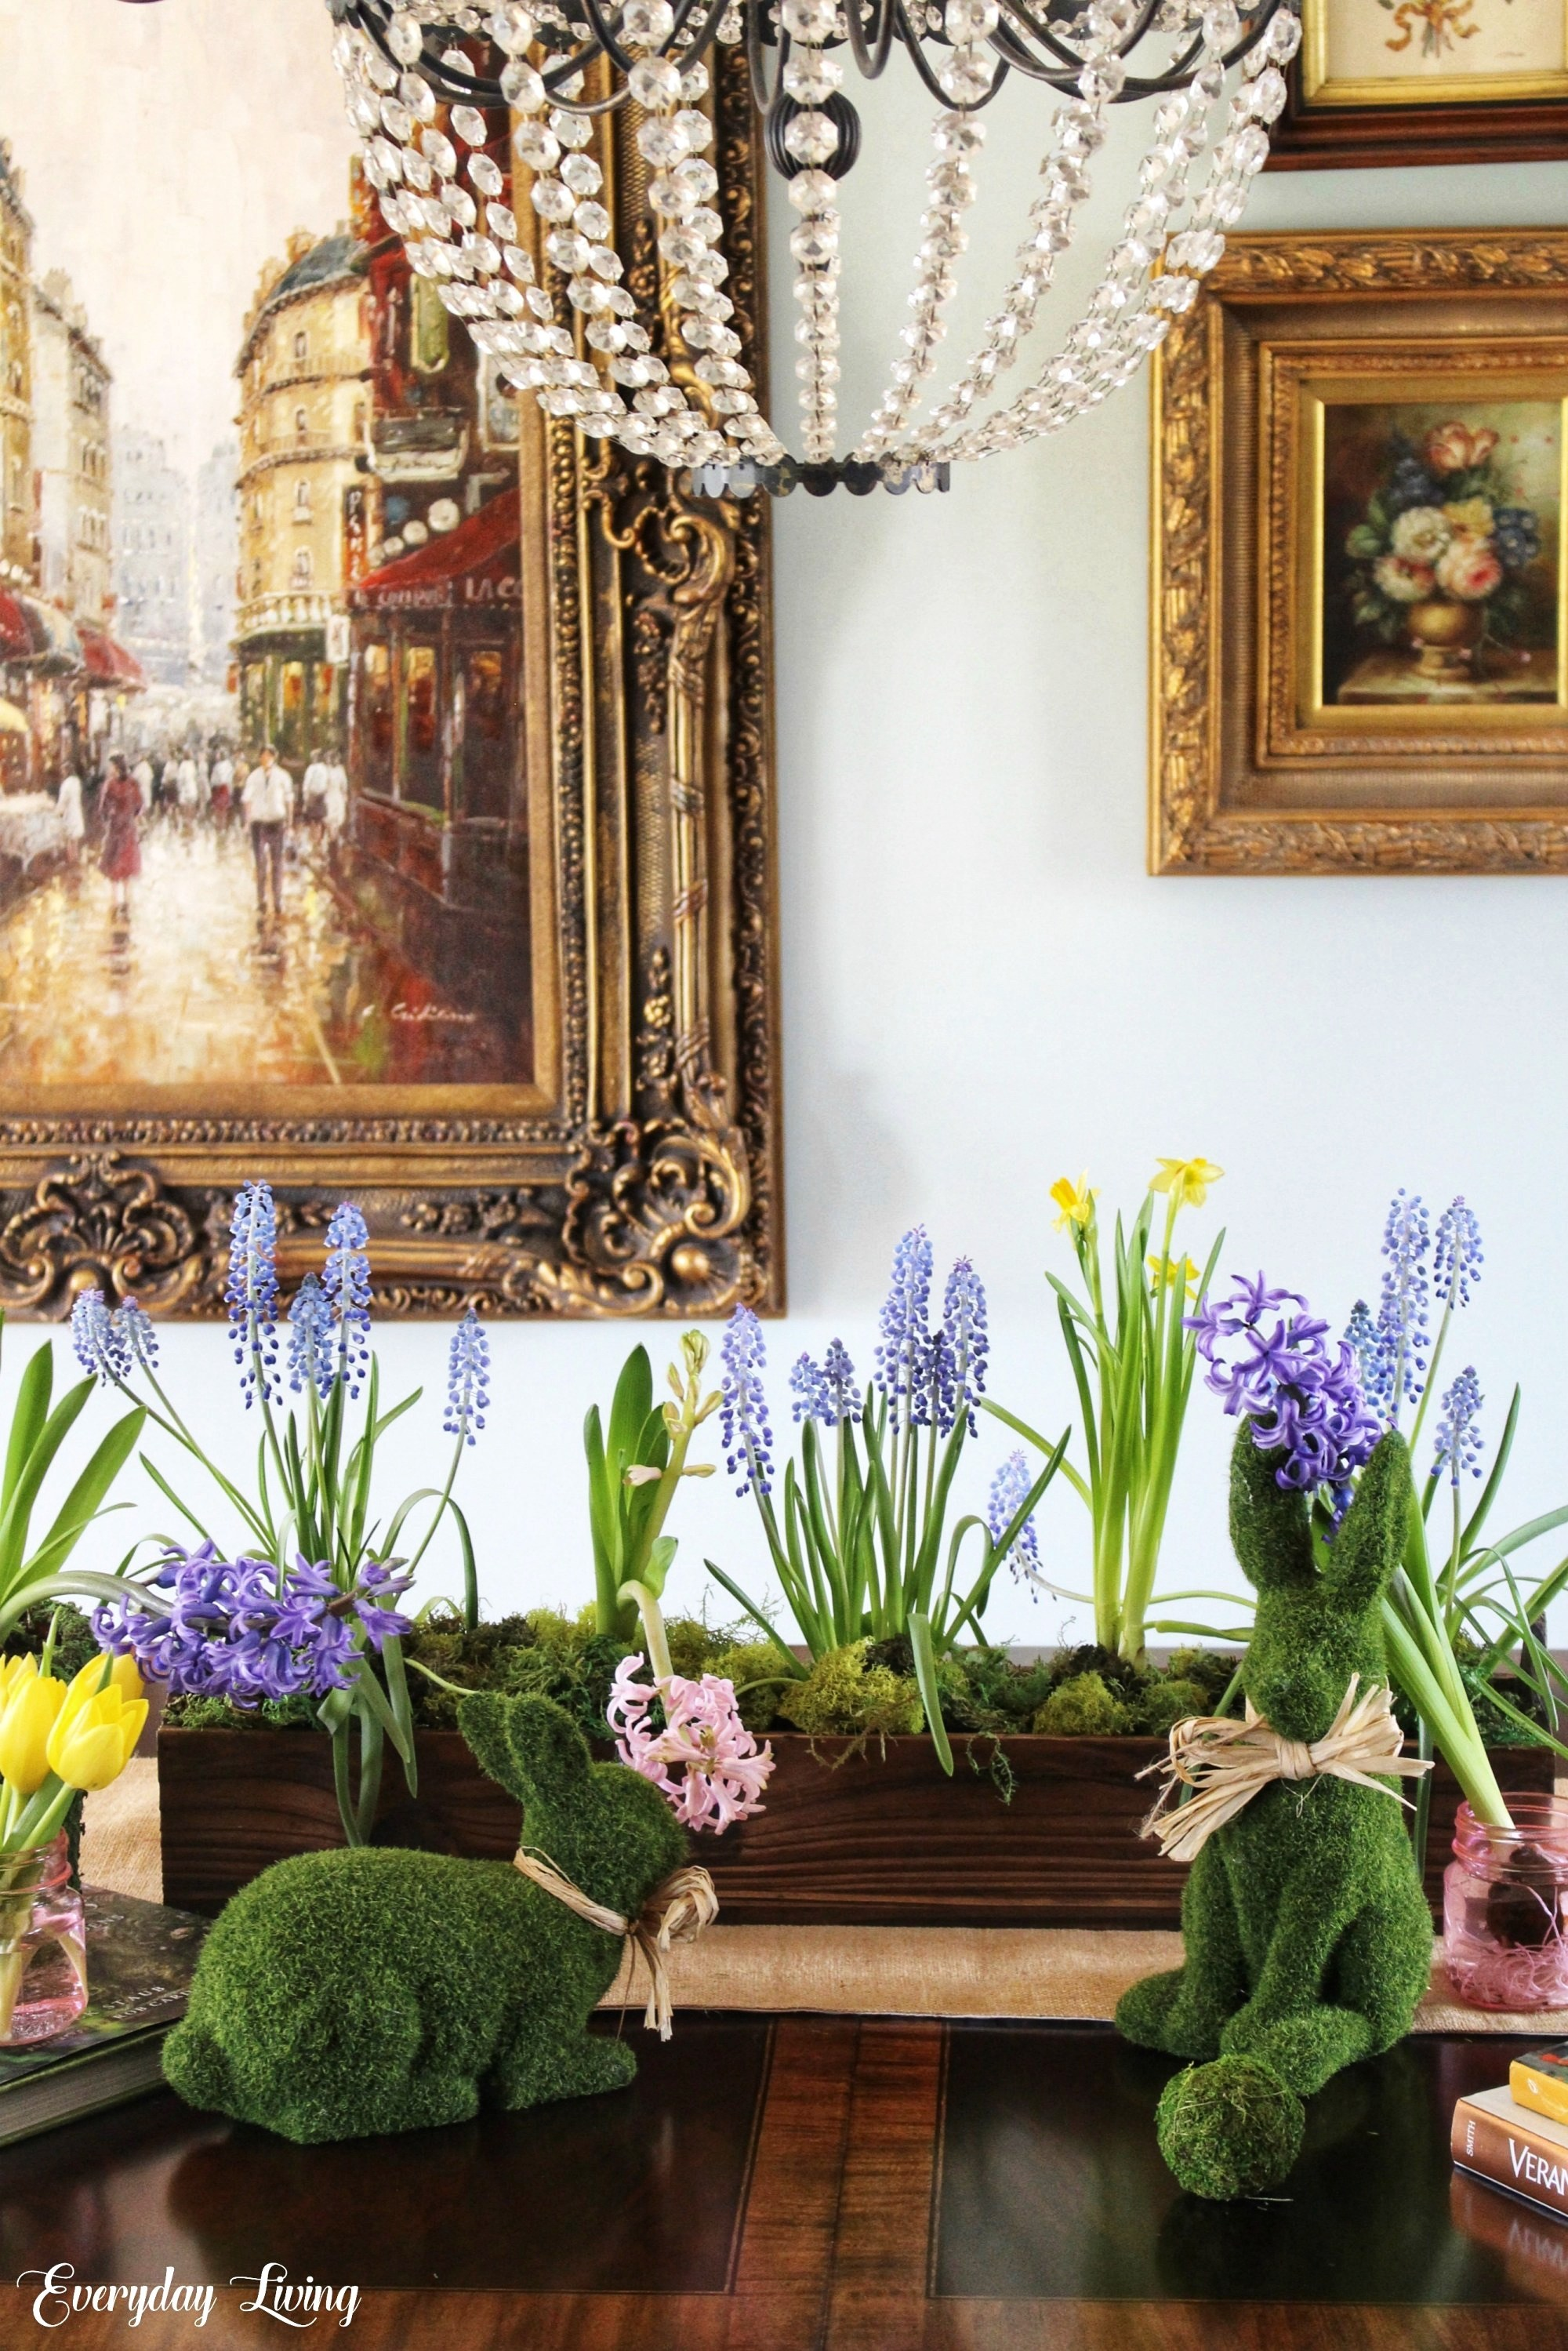 A Little Garden of Spring Bulbs | Everyday Living